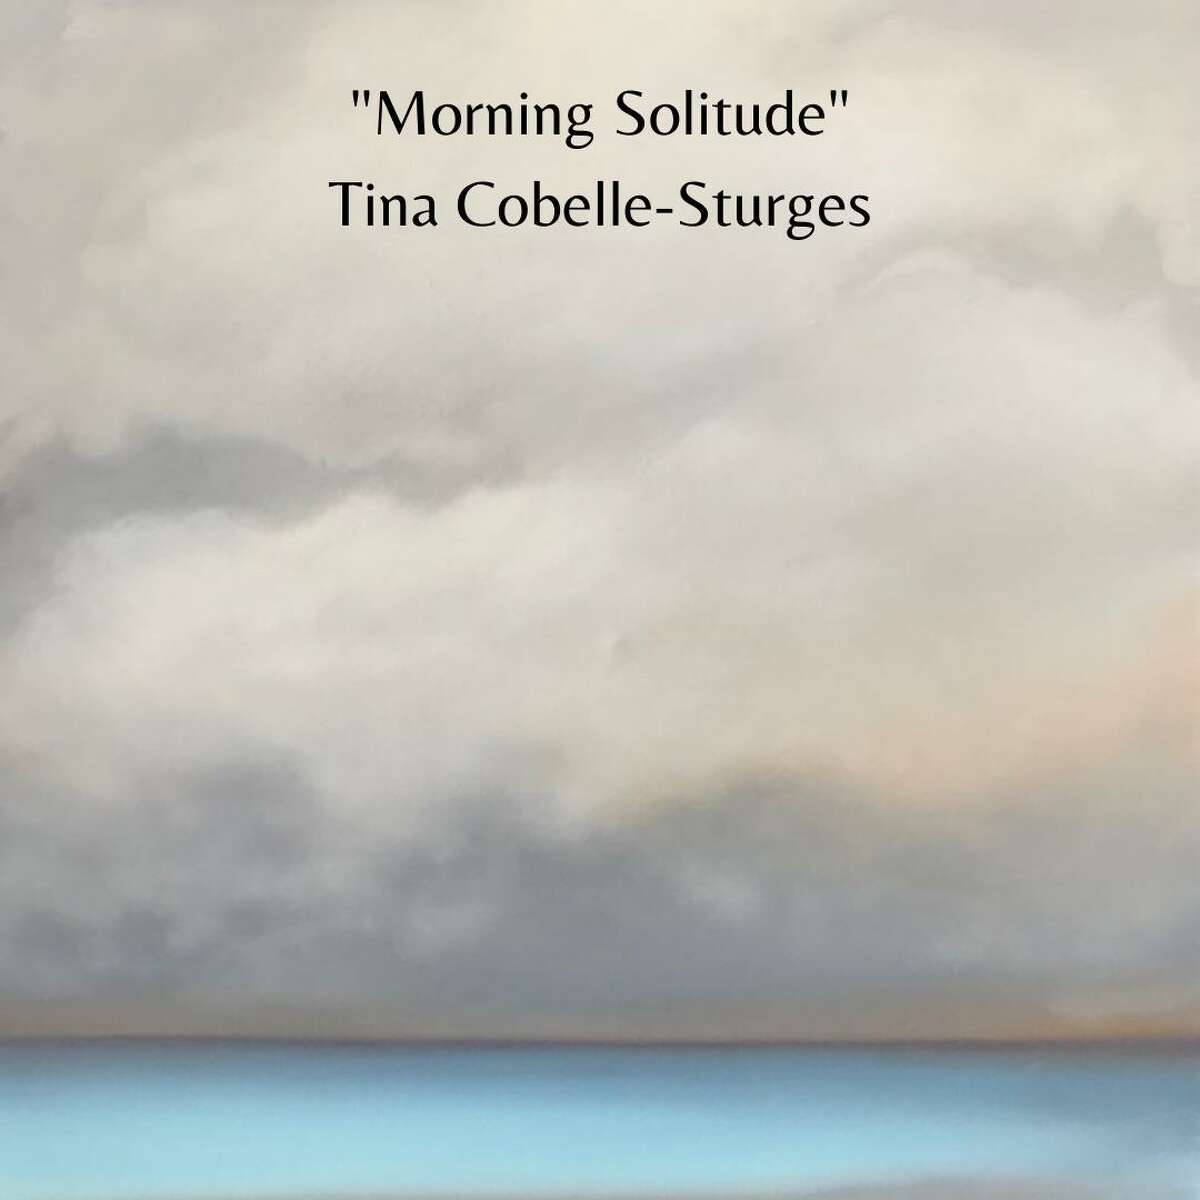 Ridgefield Artist Tina Cobelle-Sturgese' 36-inch-by-36-inch oil on canvas oceanscape artwork titled: